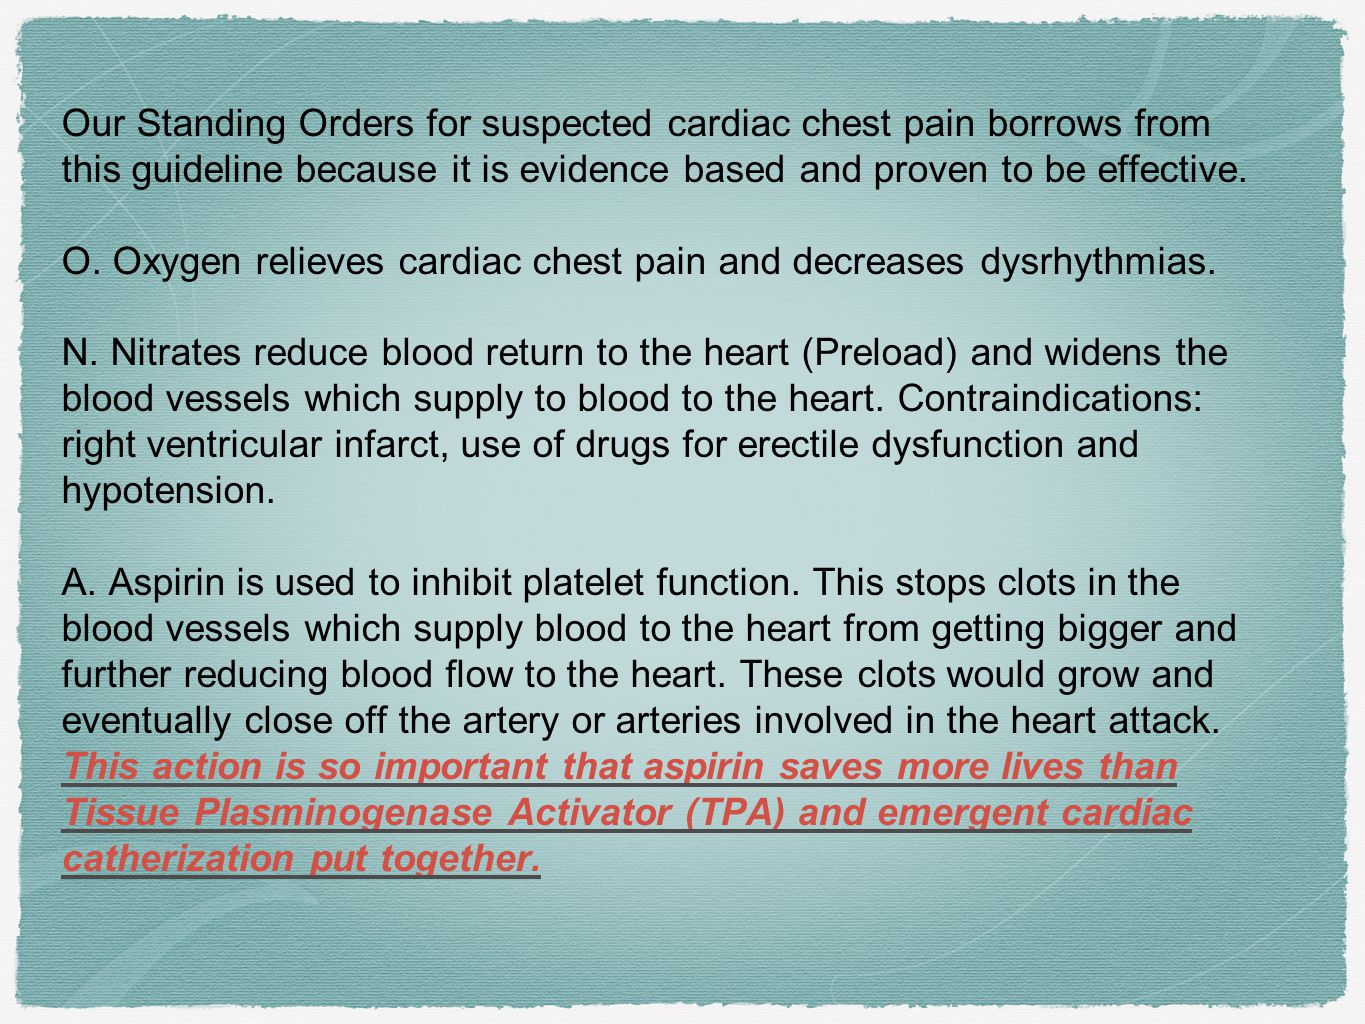 Our Standing Orders for suspected cardiac chest pain borrows from this guideline because it is evidence based and proven to be effective.